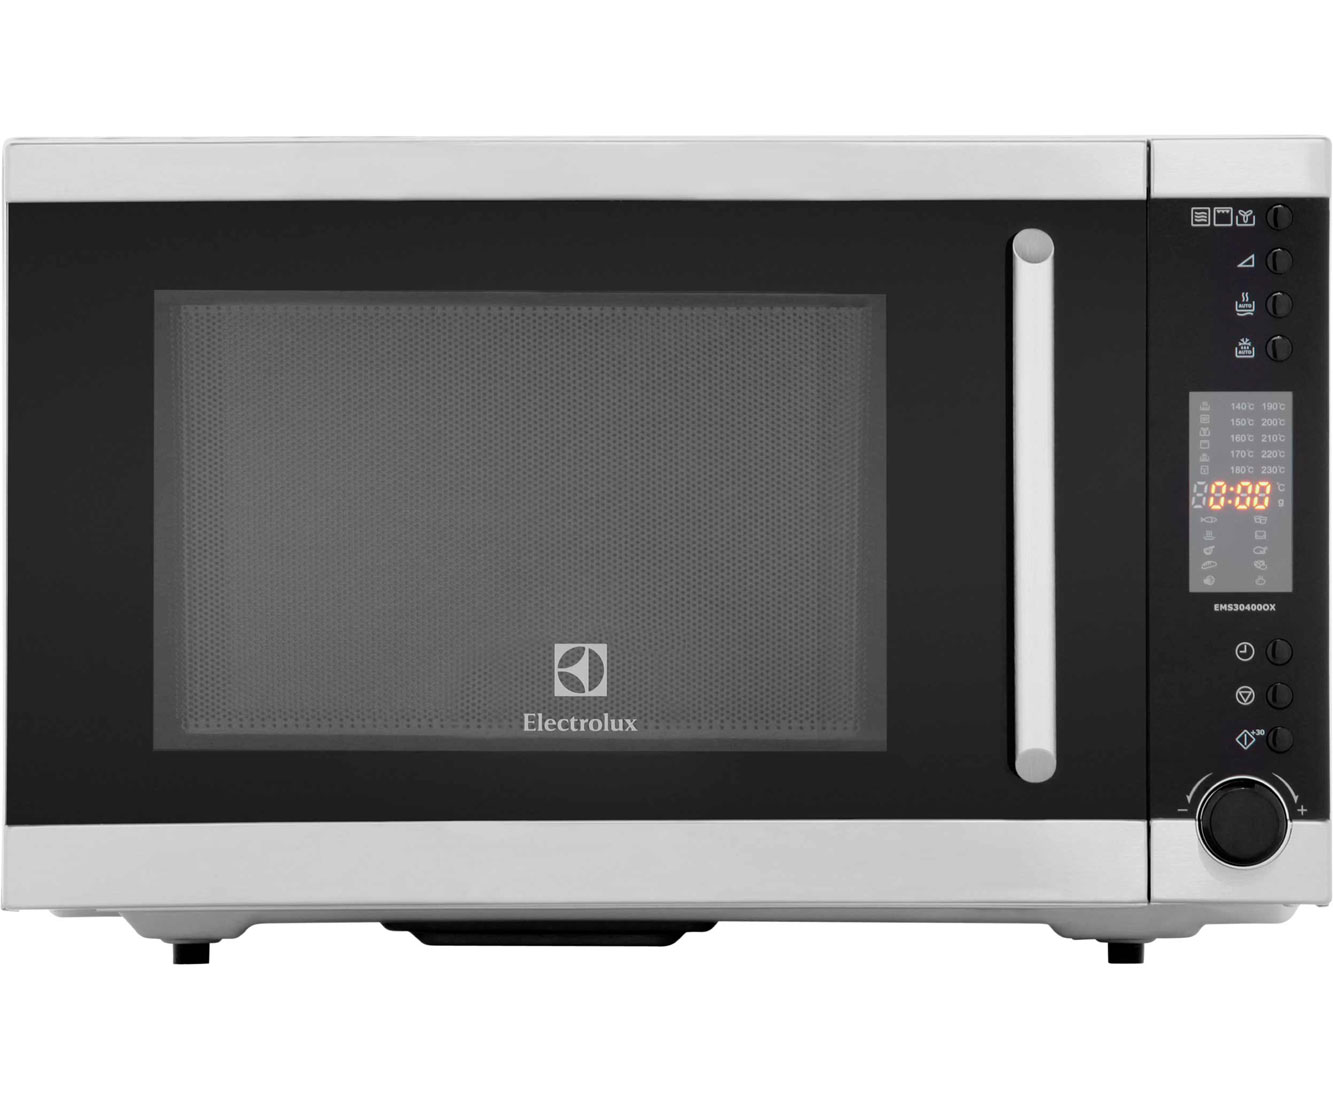 Electrolux EMS30400OX 27.6 Litre Combination Microwave Oven - Stainless Steel